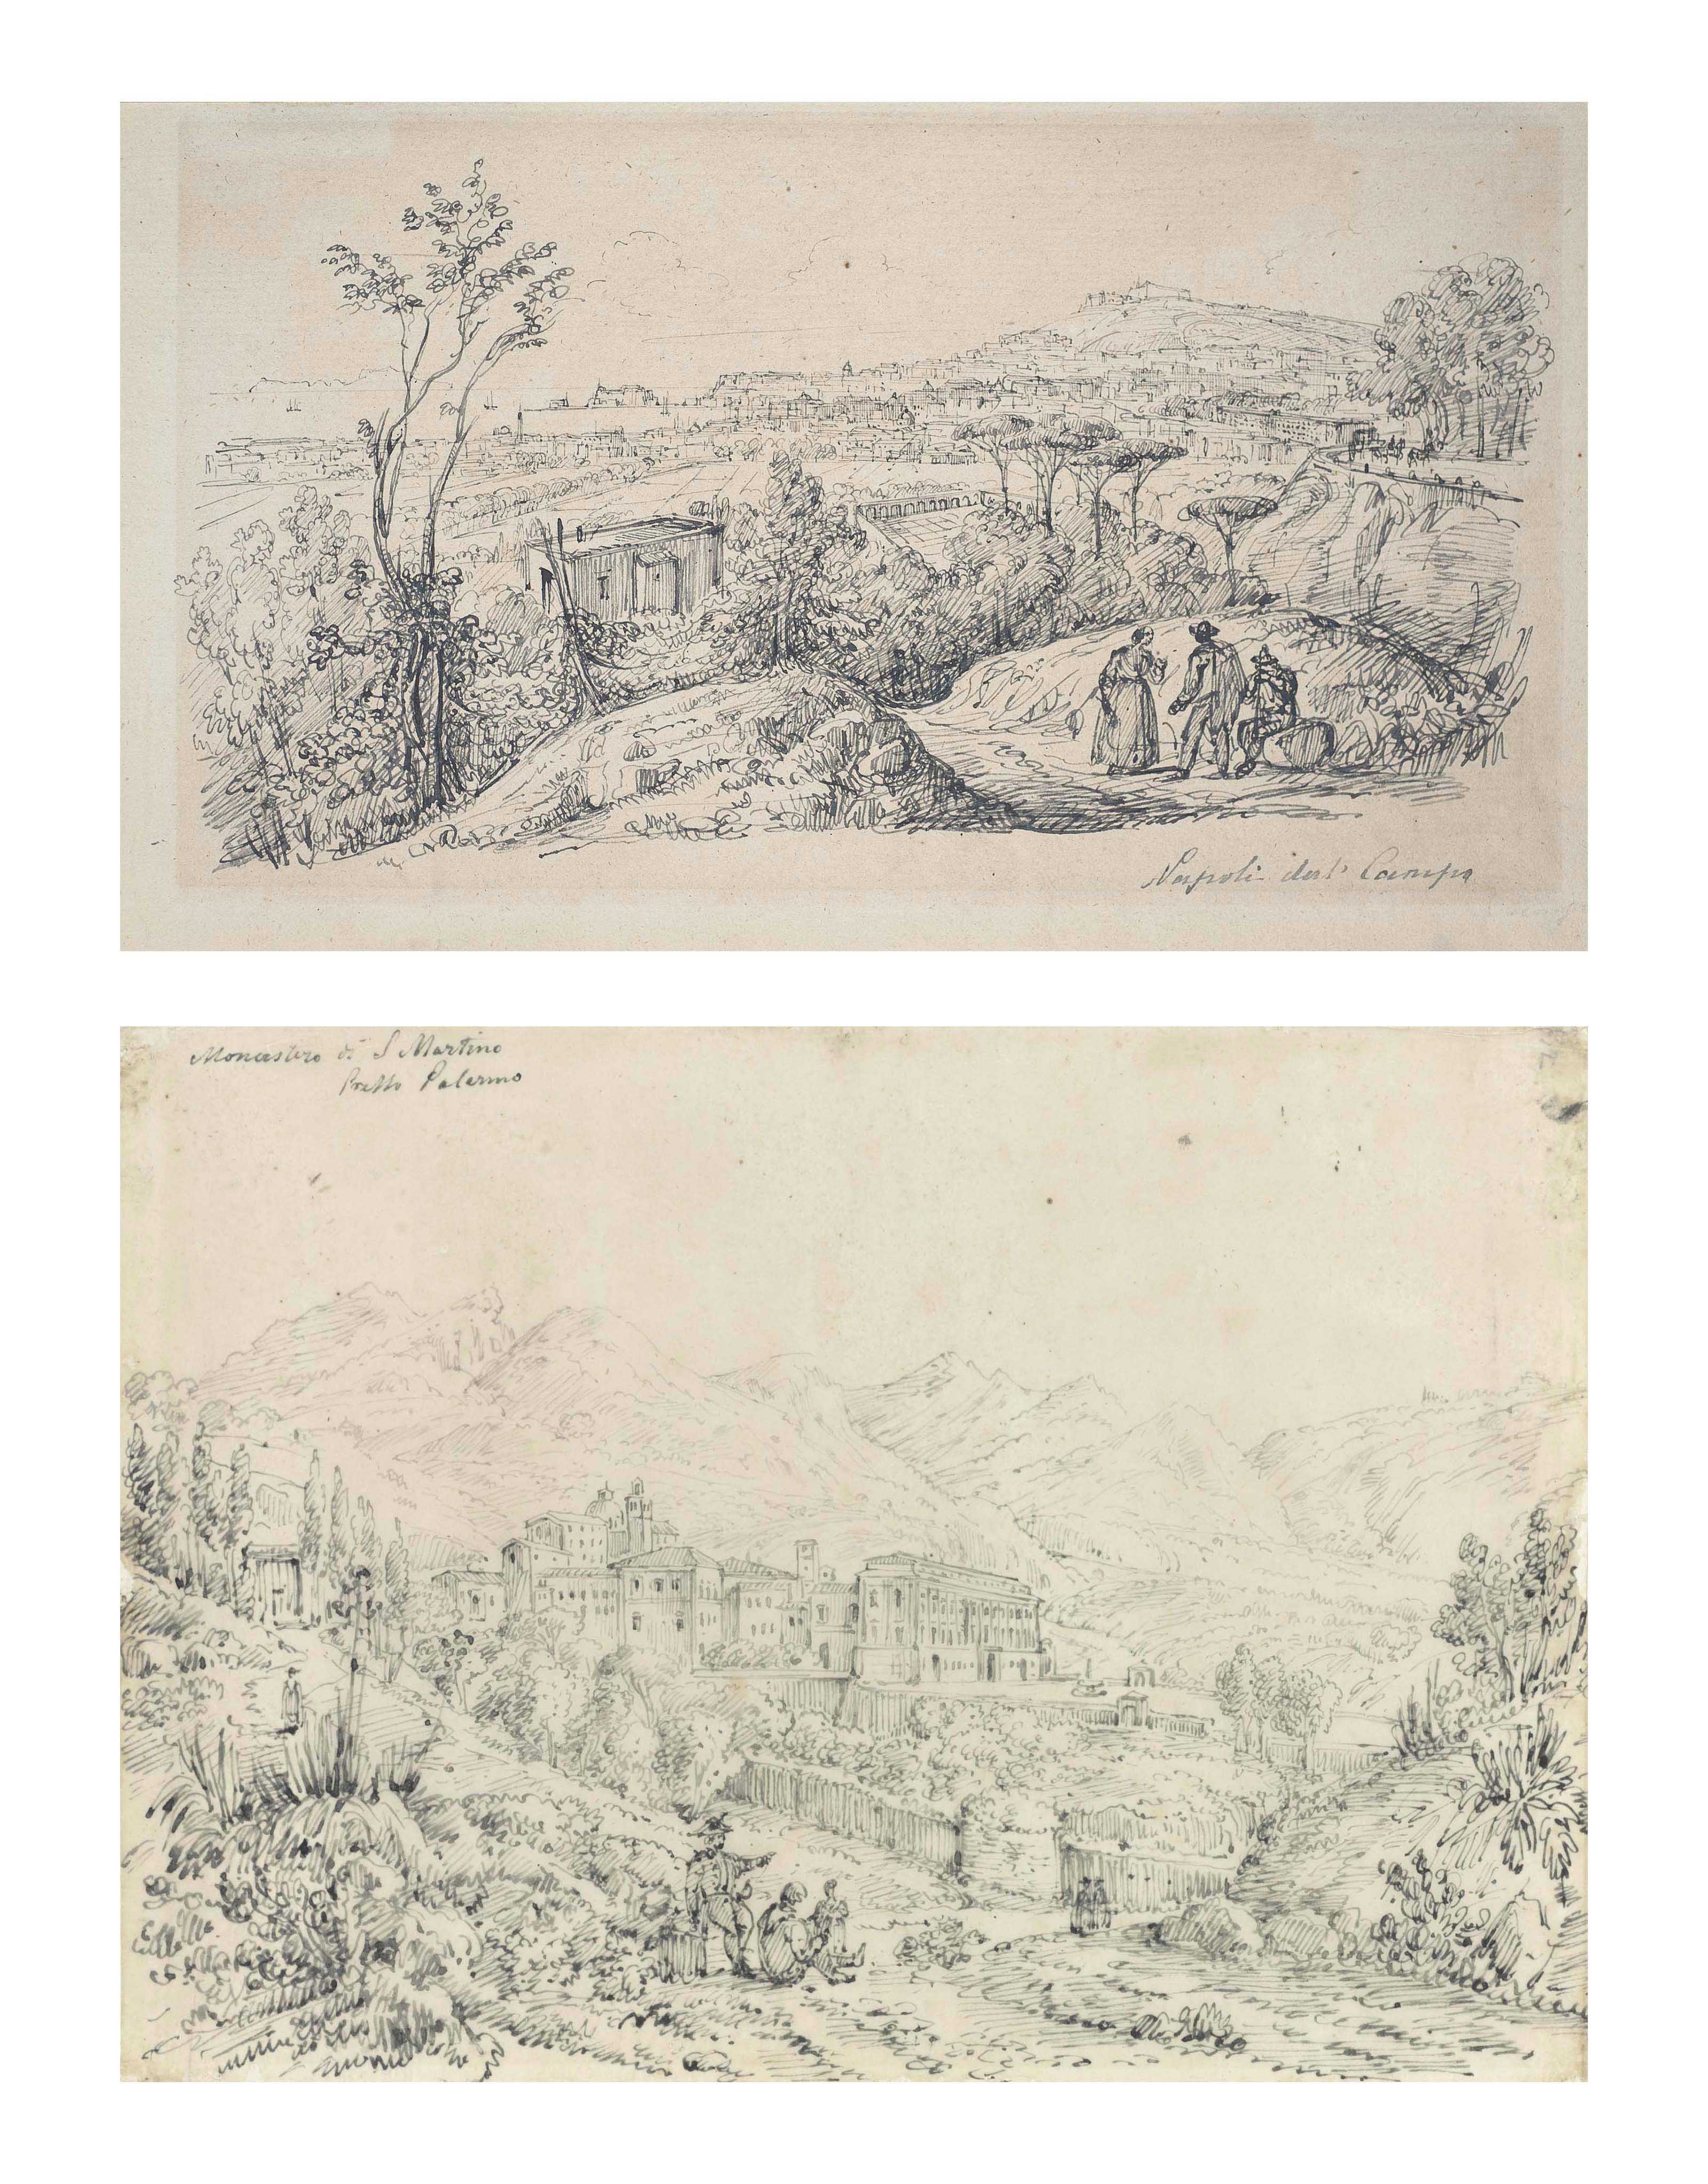 Four views of Naples and Sicily: View of Selinunte; Naples from the Campo; The monastery of San Martino near Palermo; and Naples from the Carmine